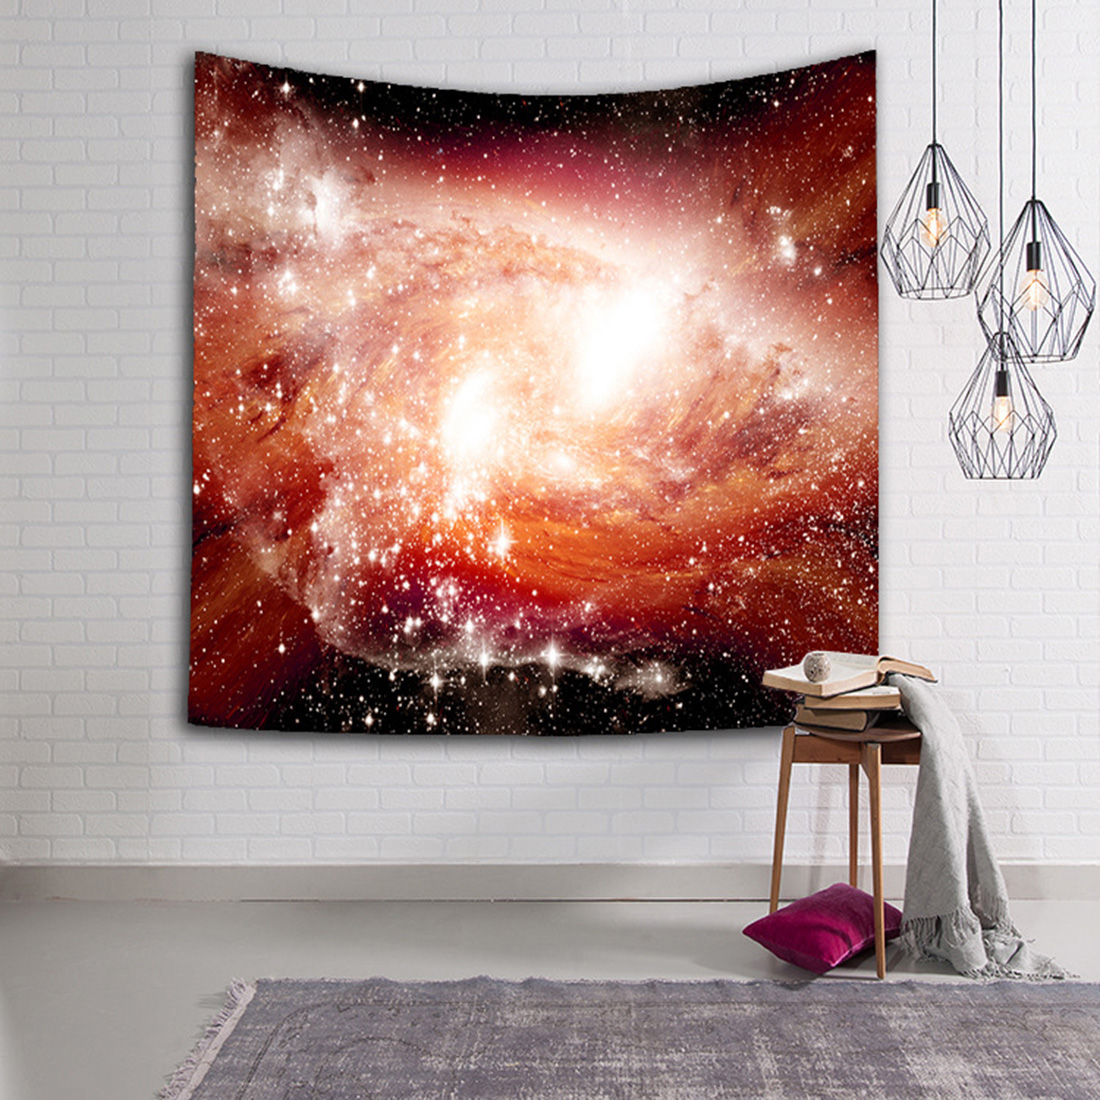 Beautiful Galaxy Tapestries Wall Hanging Hippie Retro Home